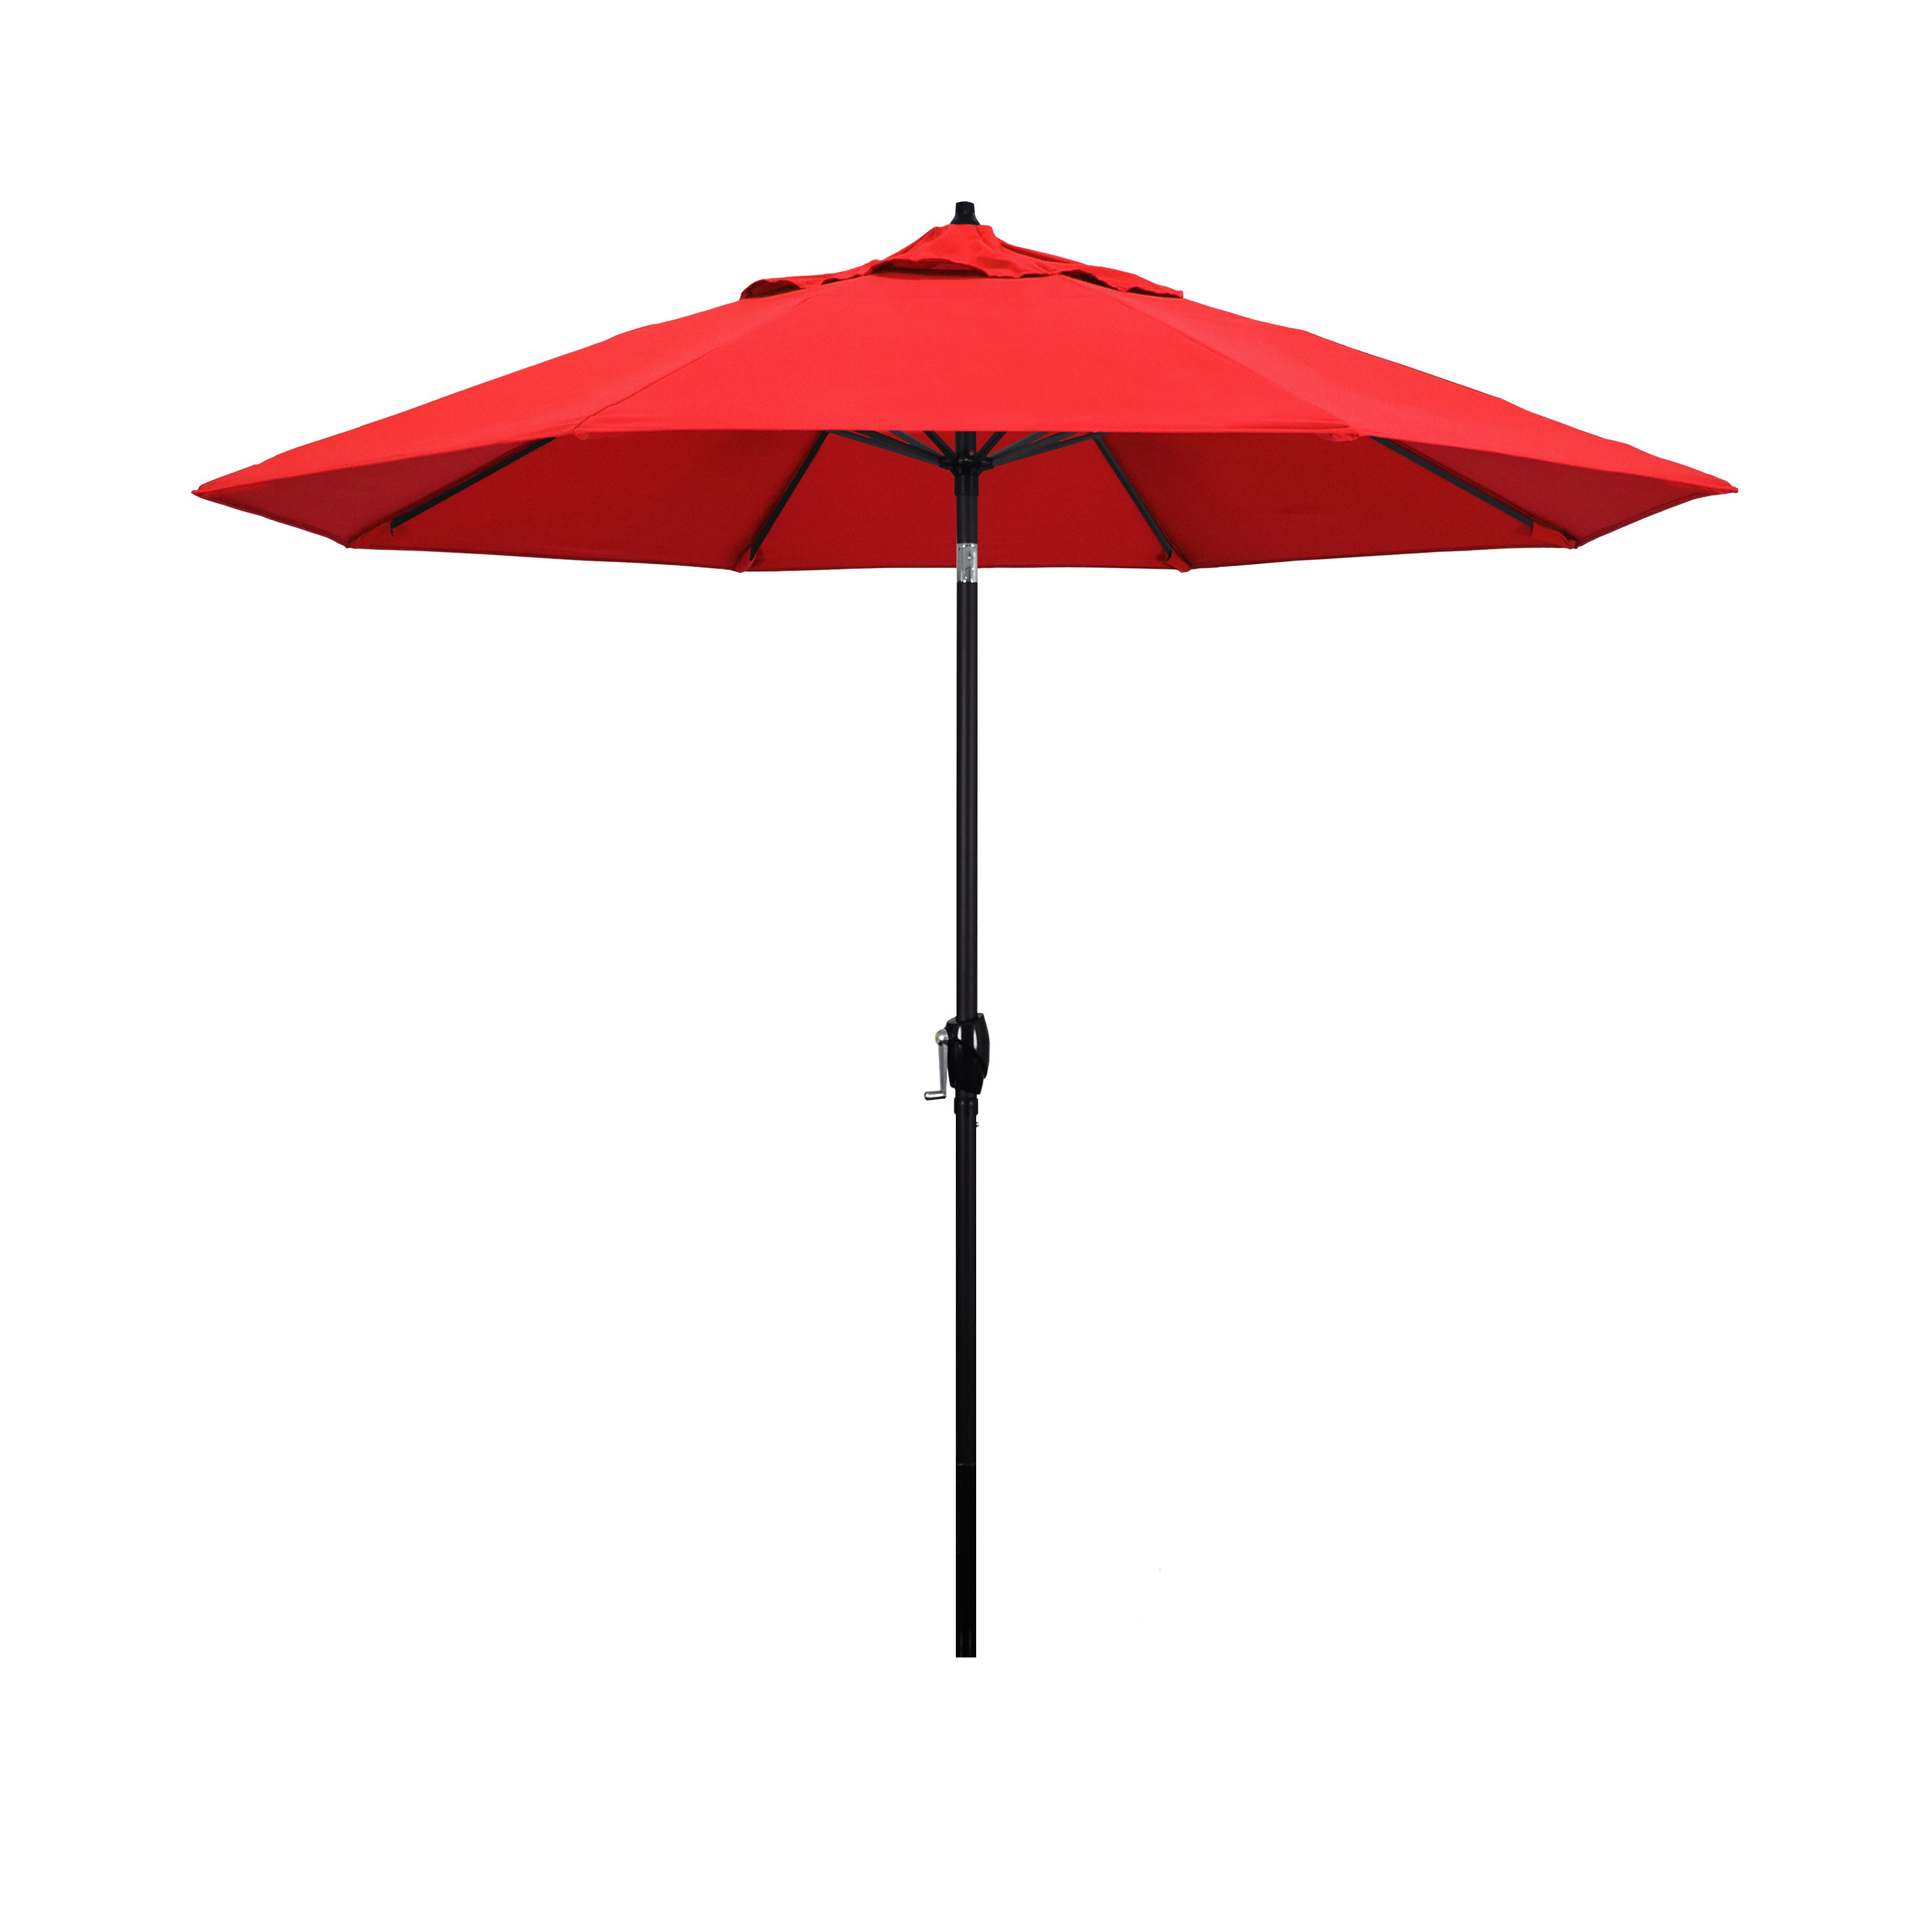 Most Current 9' Market Sunbrella Umbrella Regarding Caravelle Market Sunbrella Umbrellas (View 9 of 20)